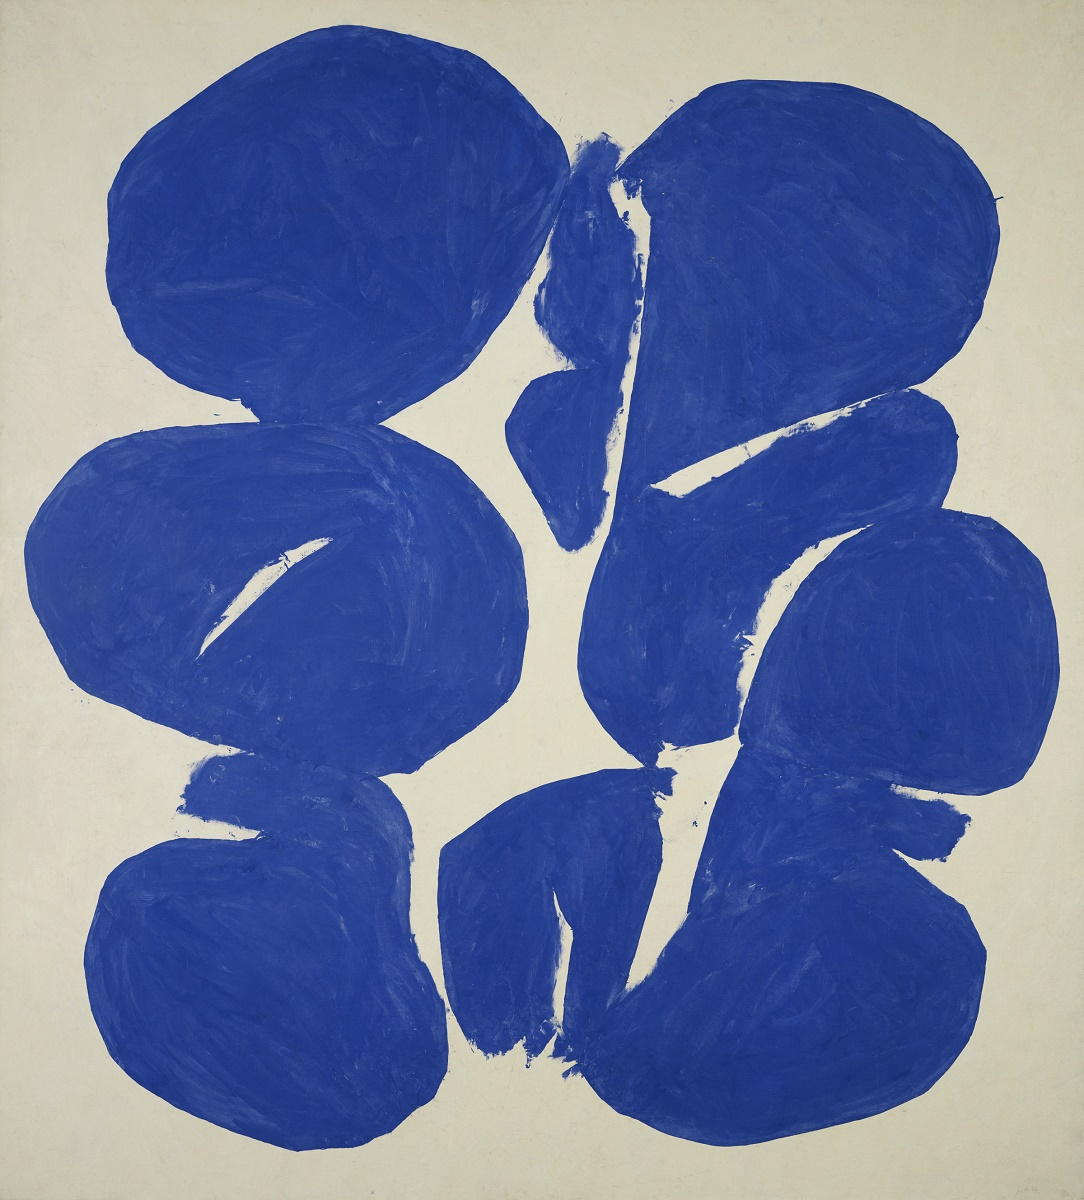 """"""" Blue Meun"""" from 1967, oil on canvas, 96 1/2 x 87 inches Courtesy of Paul Rodgers / 9W Gallery"""